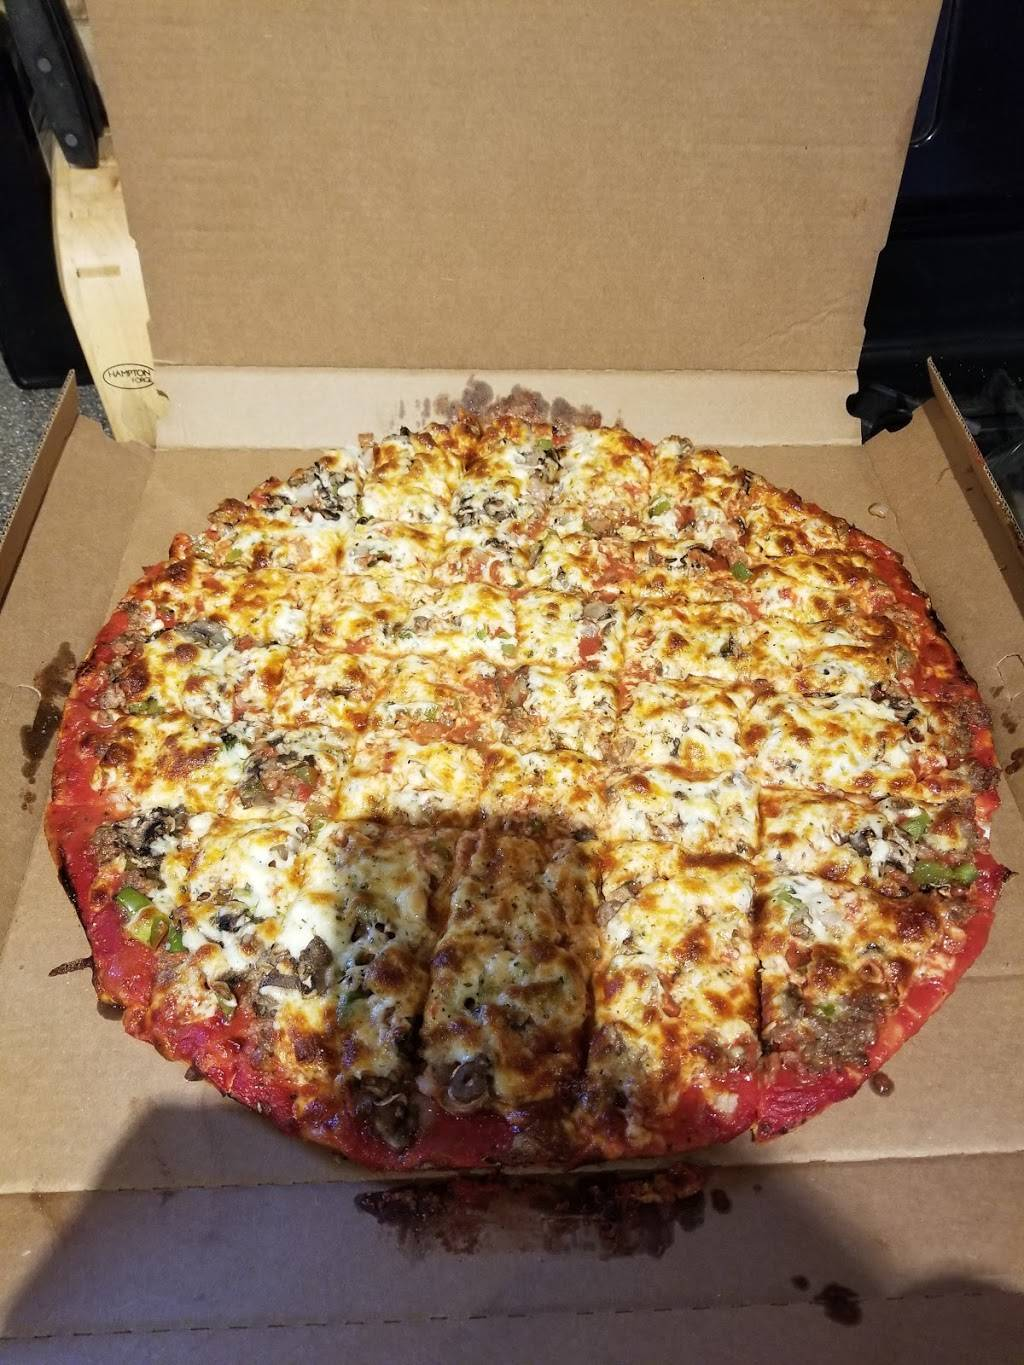 Zazzos Pizza and Bar | meal delivery | 200 West Ogden Avenue, Westmont, IL 60559, USA | 6307962220 OR +1 630-796-2220